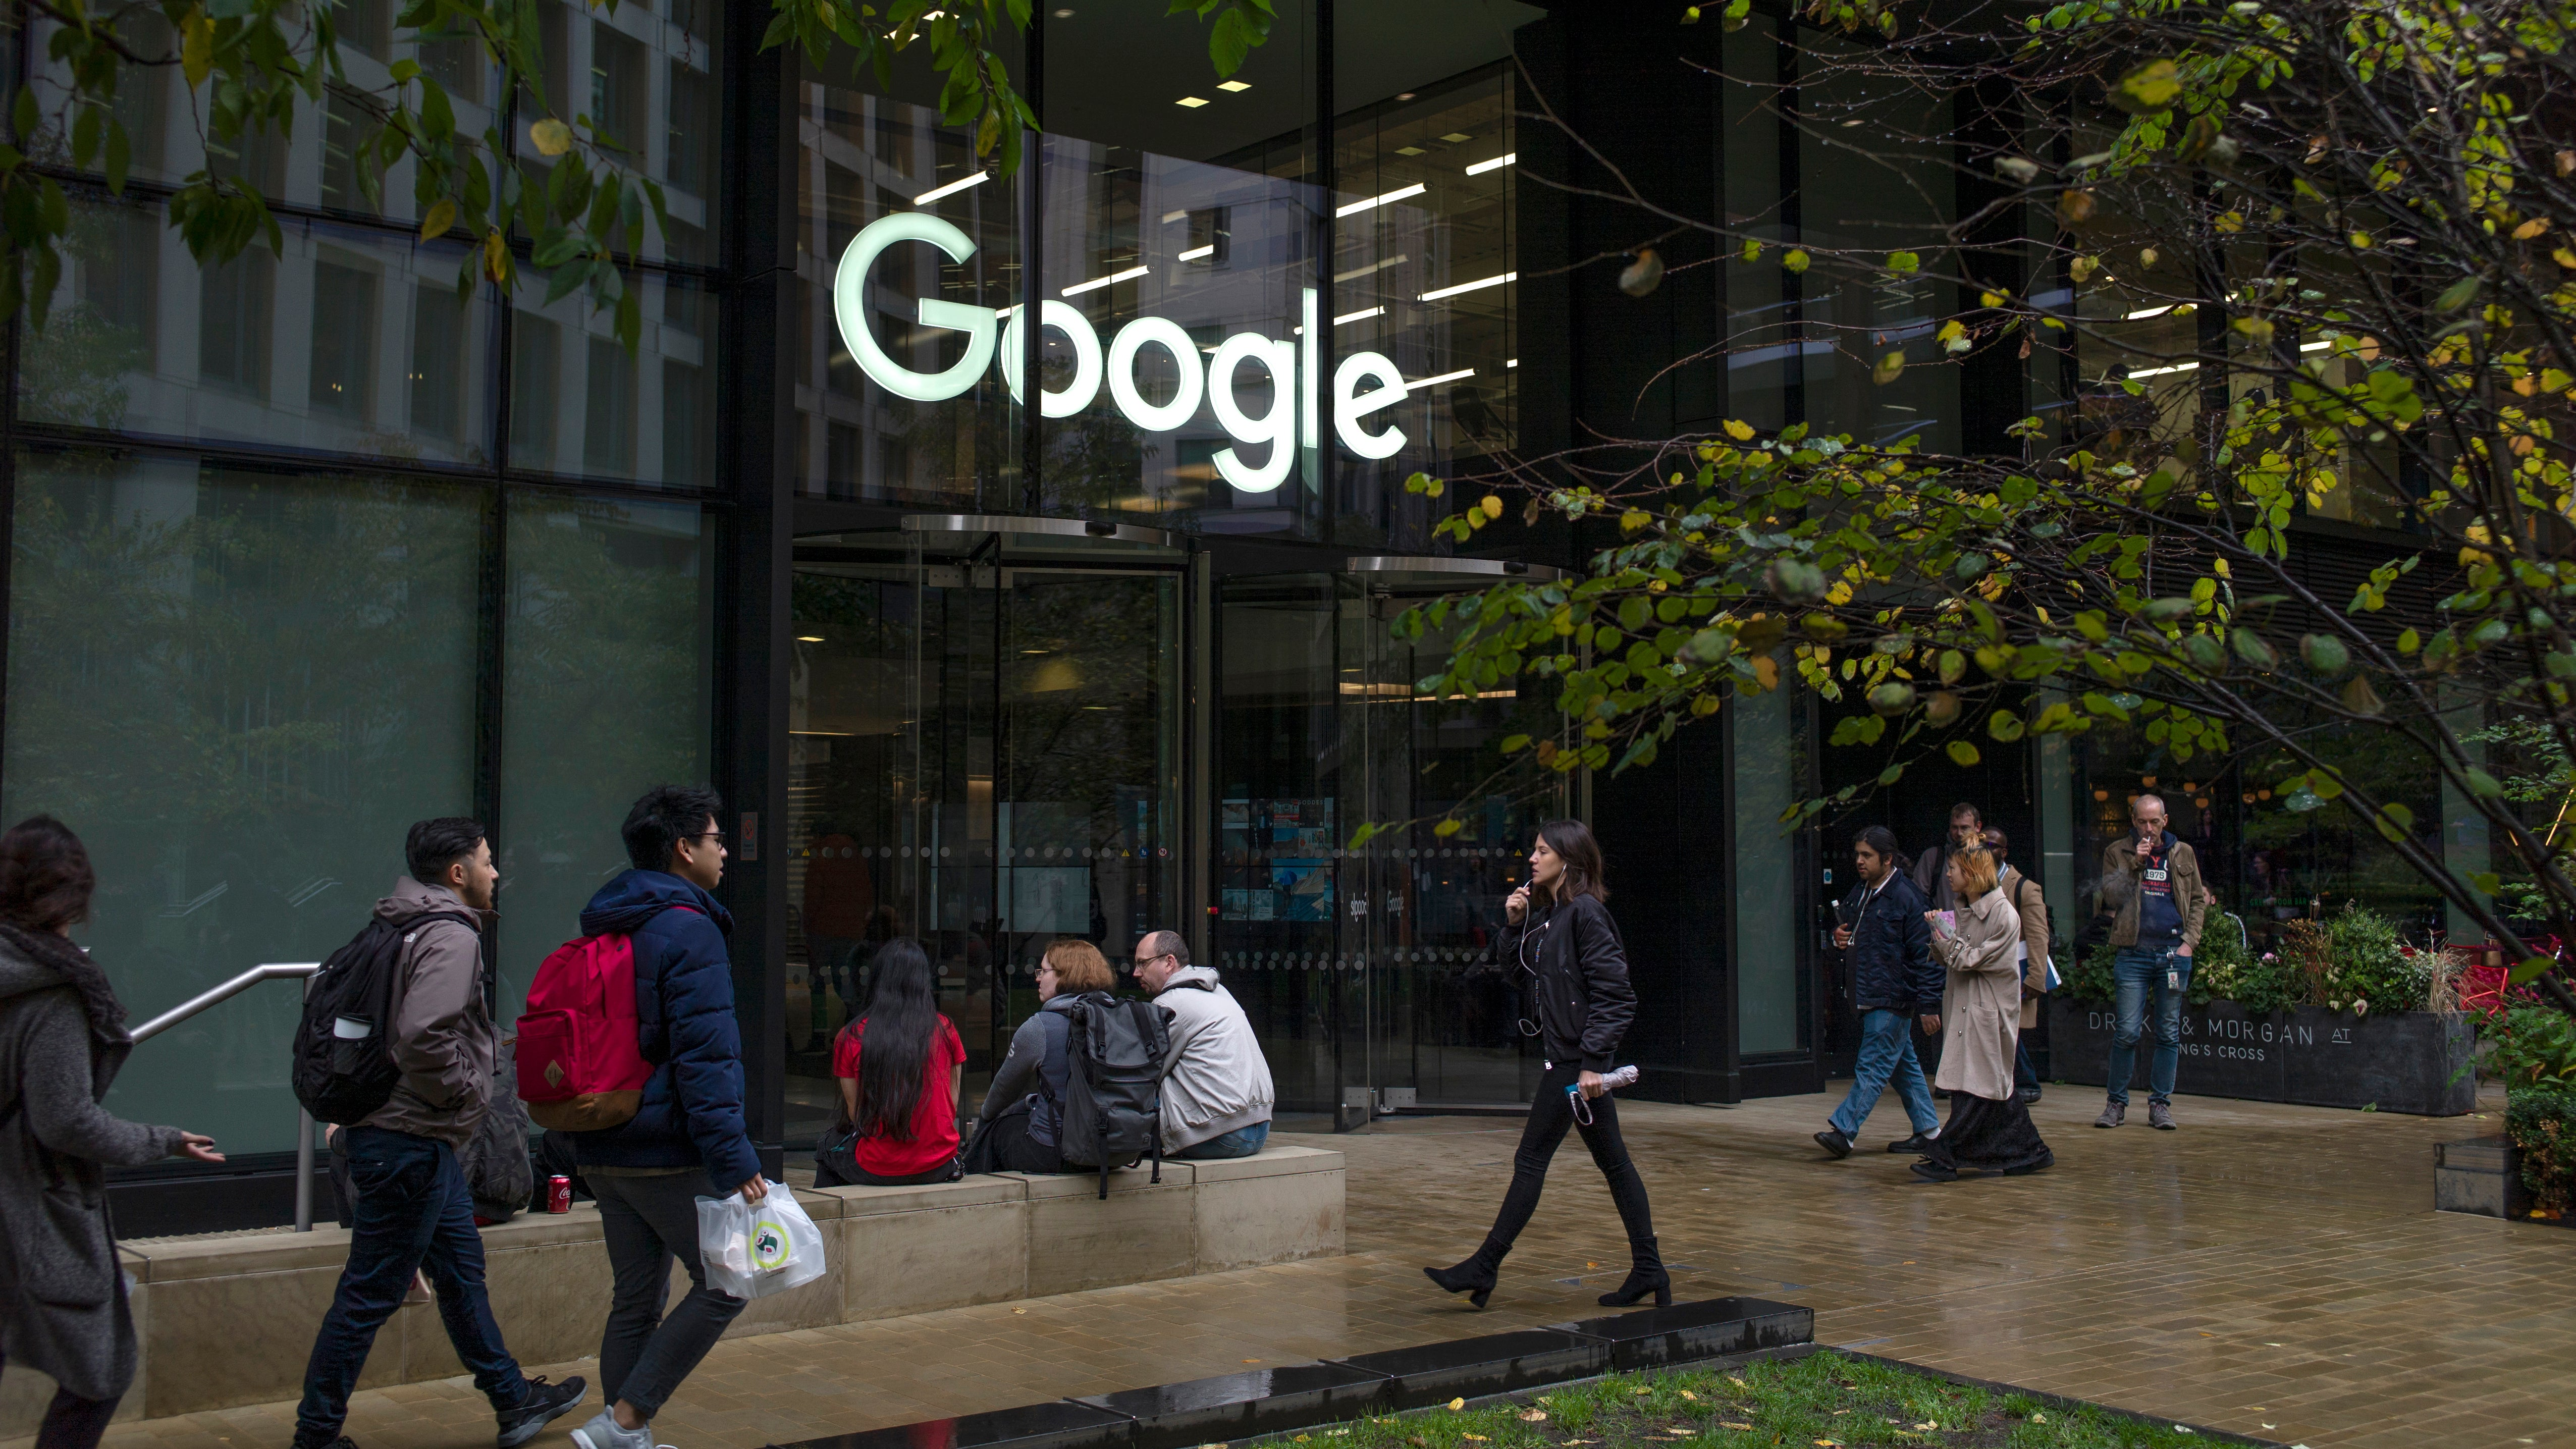 Google Only Has To Respect Your 'Right To Be Forgotten' In The EU, Court Says